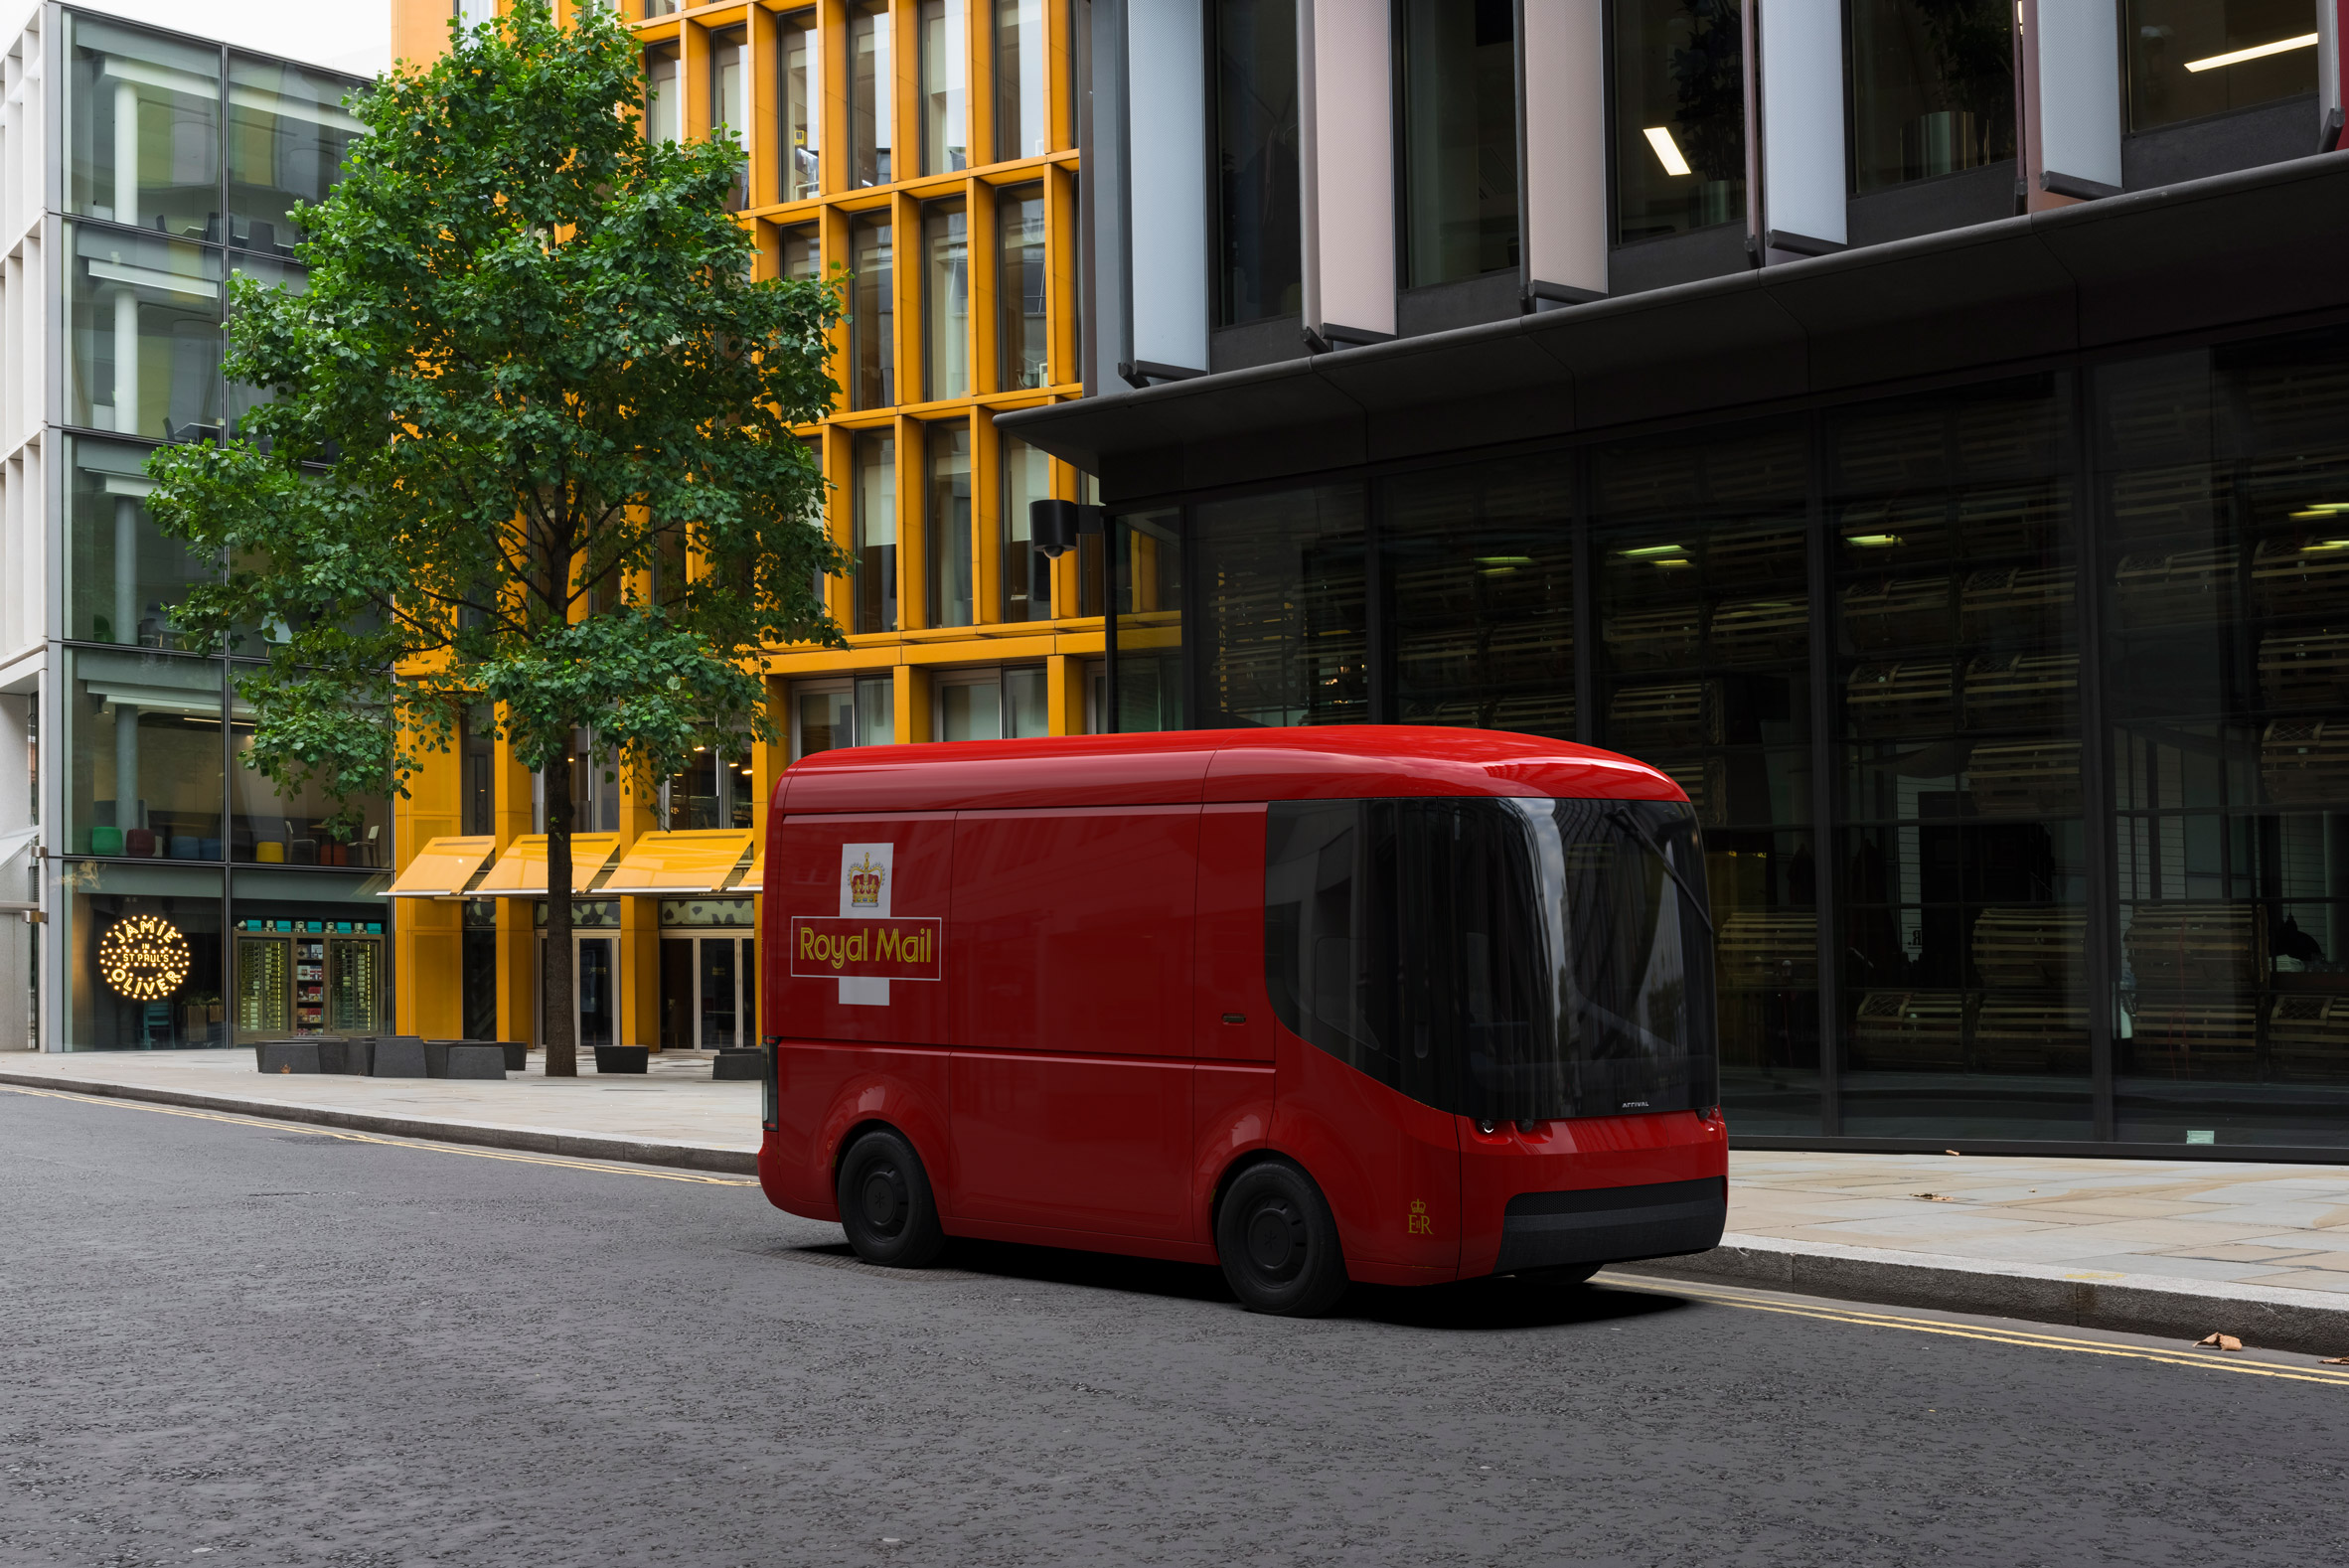 Royal Mail vans by Arrival